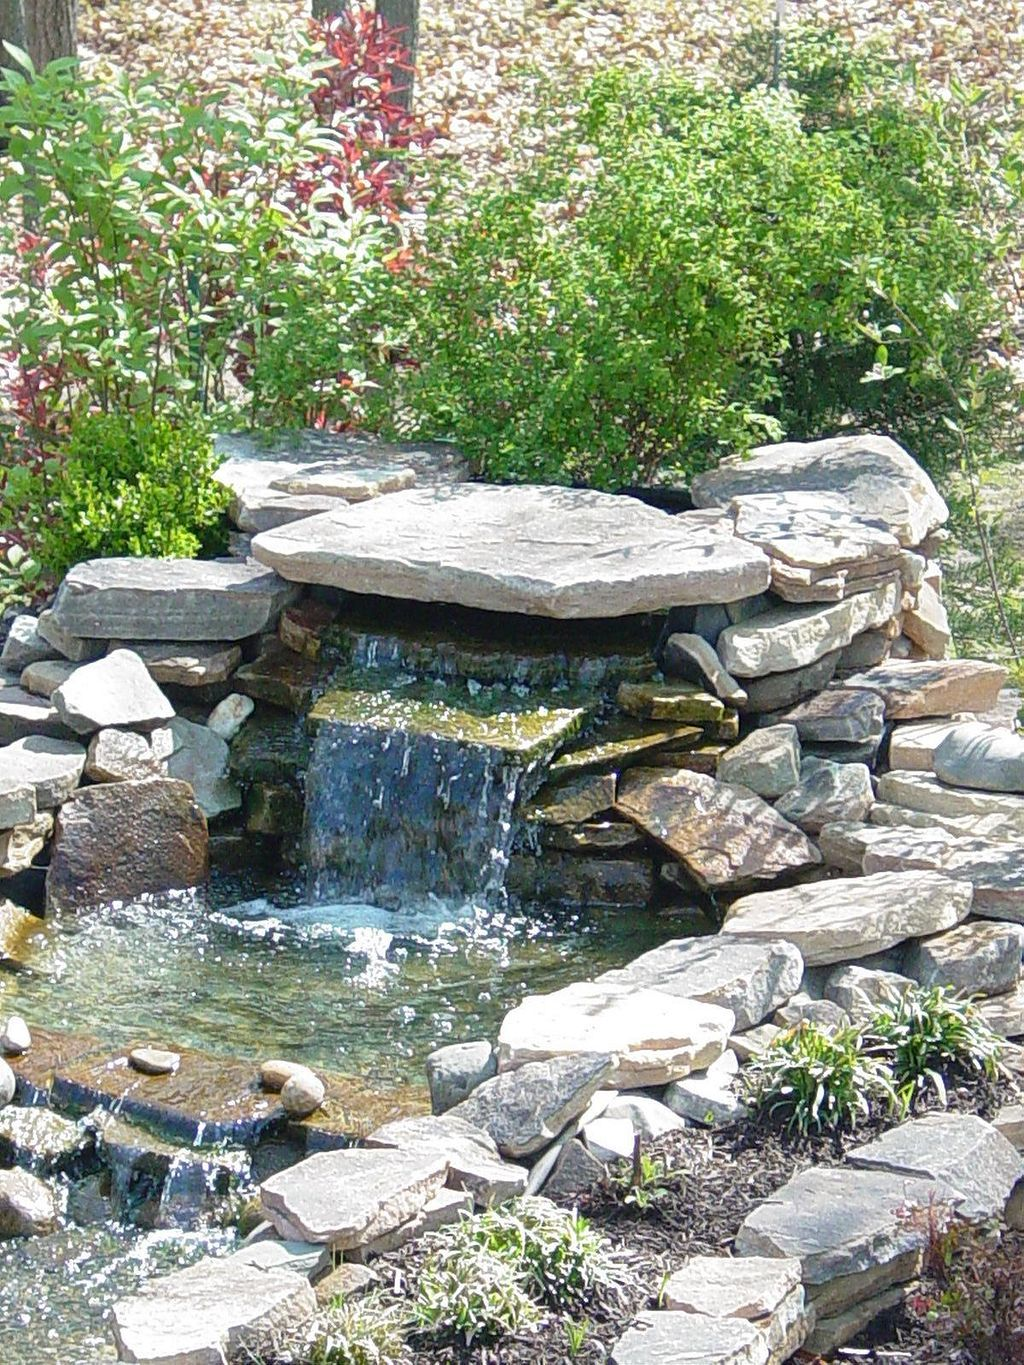 43 Great Backyard Pond Waterfall Ideas (With images ... on Small Pond Waterfall Ideas id=56887